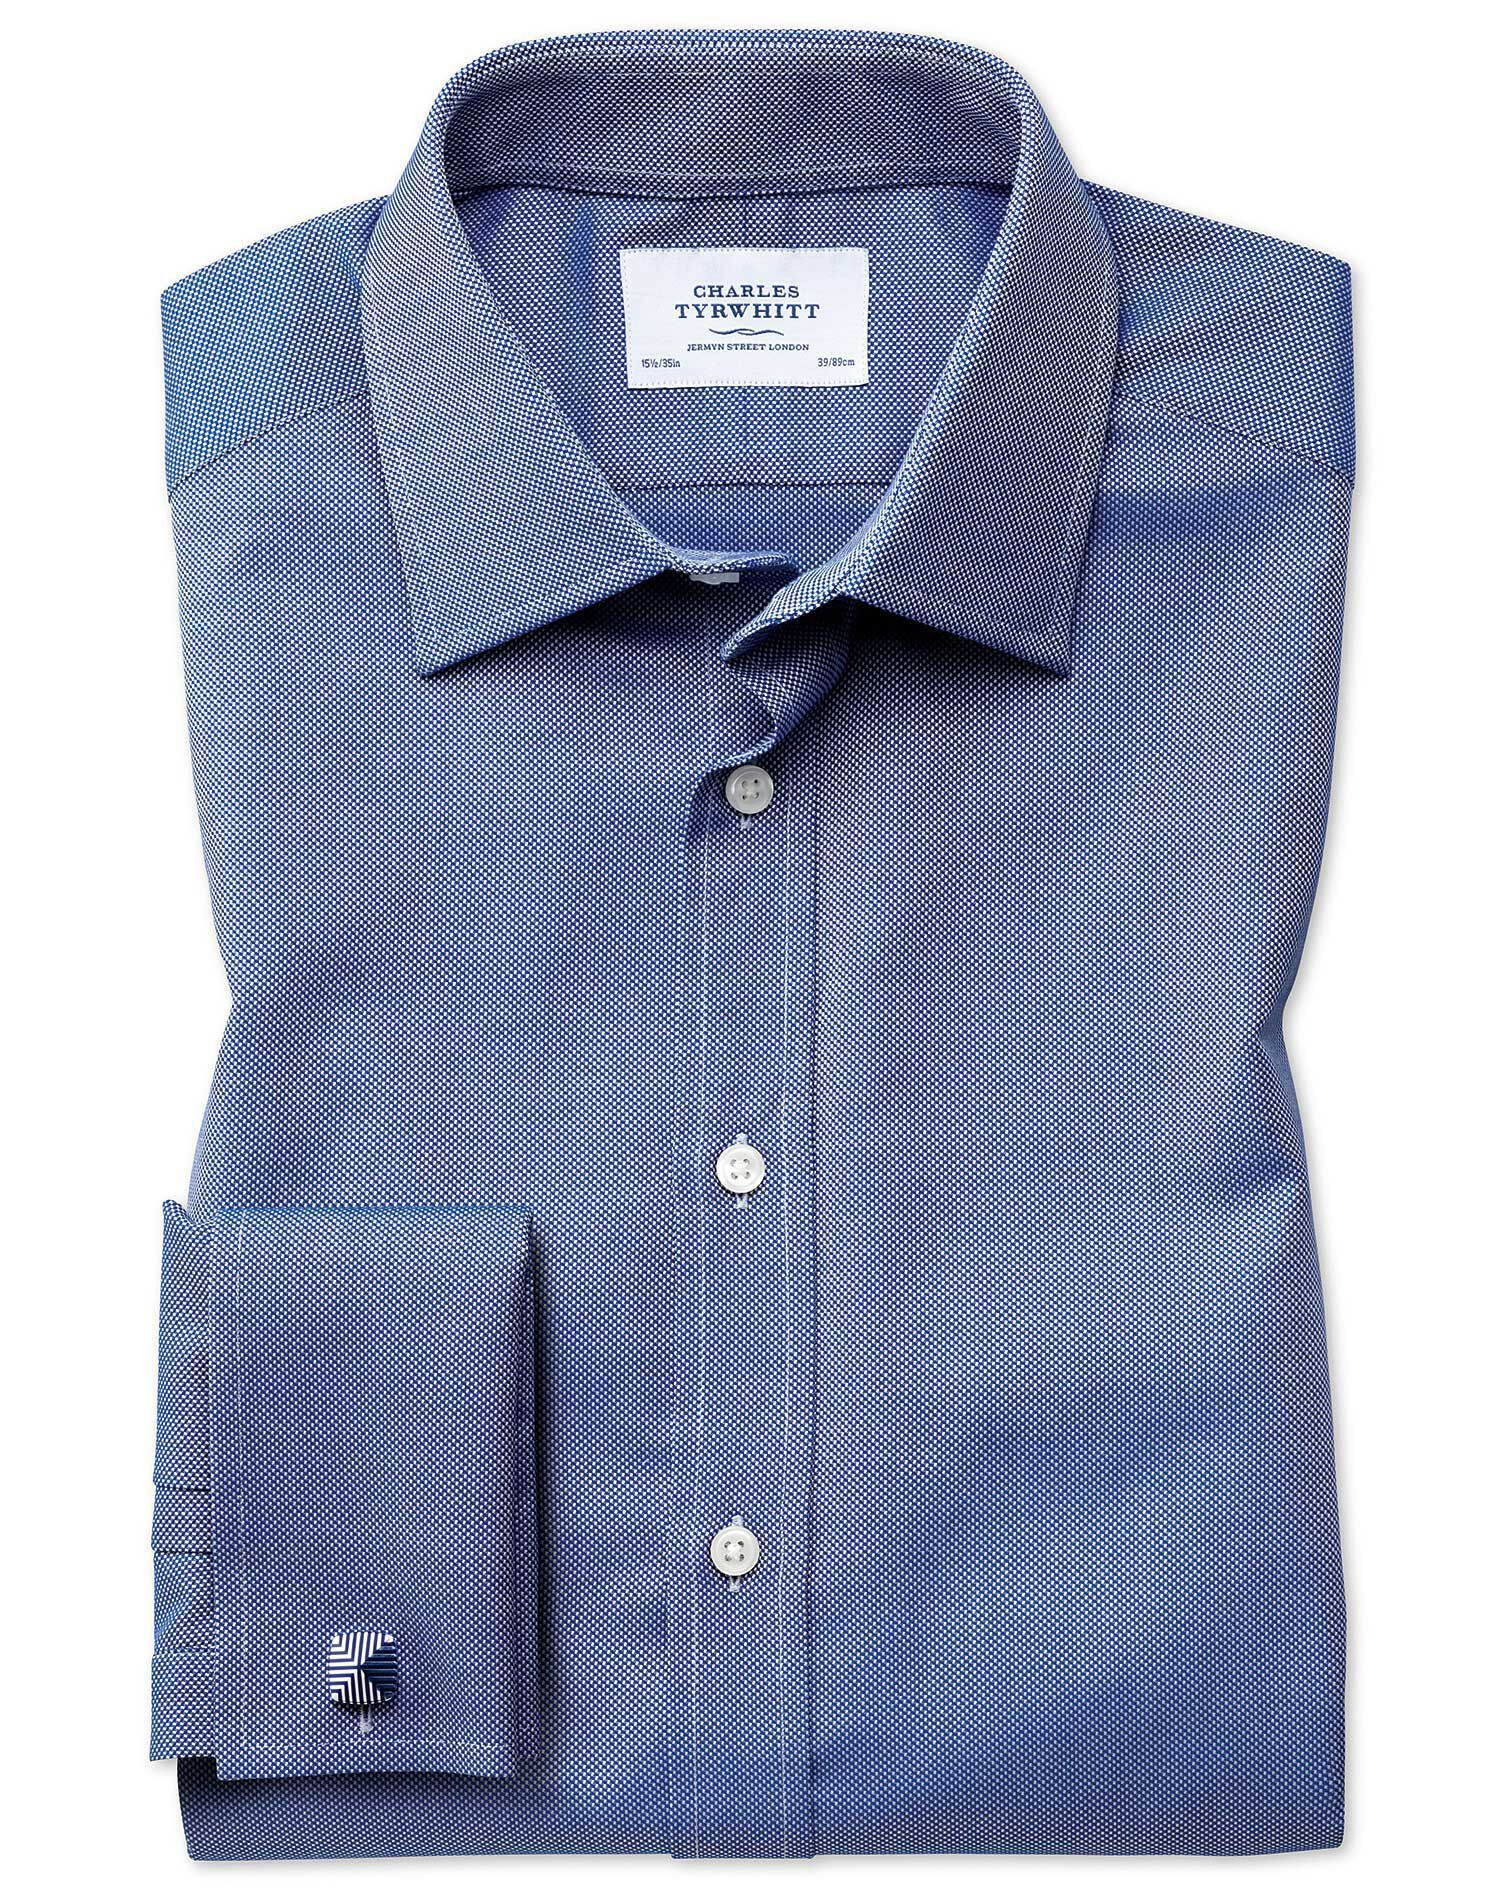 Extra Slim Fit Egyptian Cotton Royal Oxford Royal Blue Formal Shirt Single Cuff Size 16.5/33 by Char